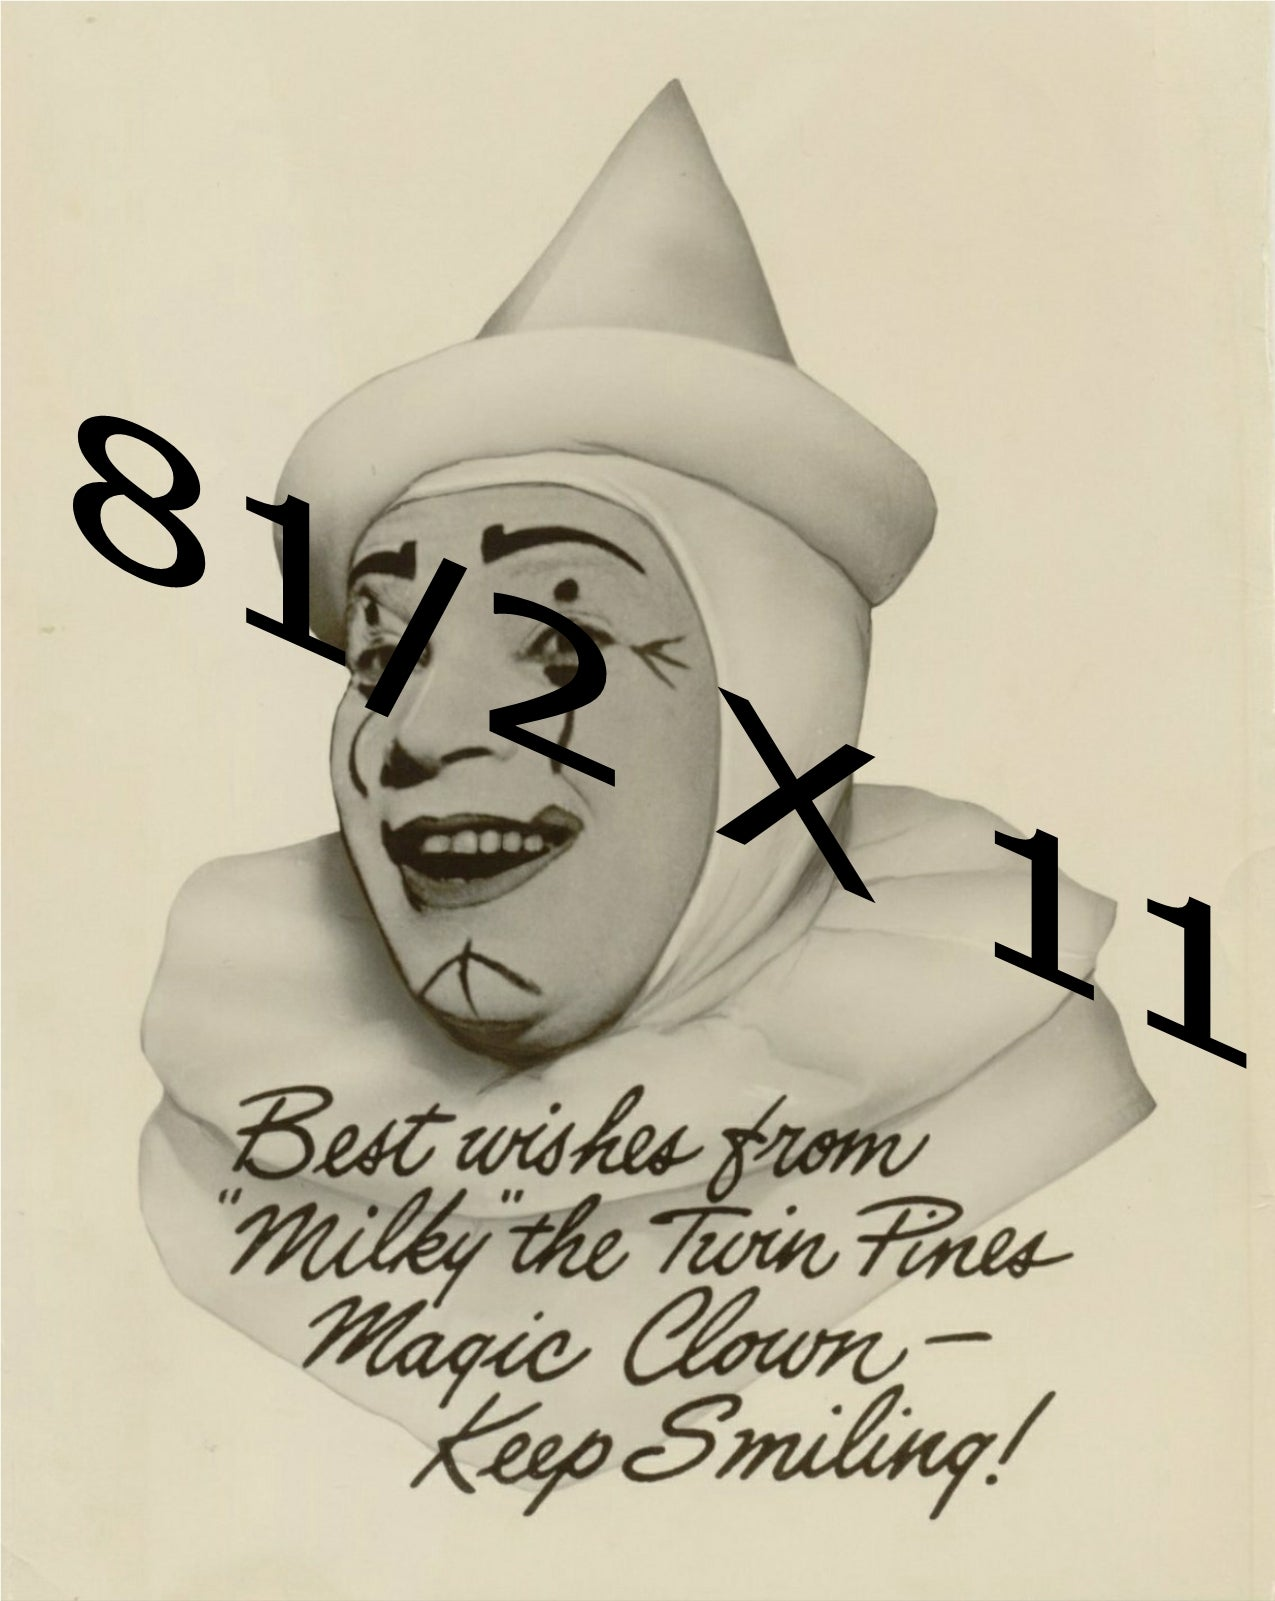 milky the clown photo